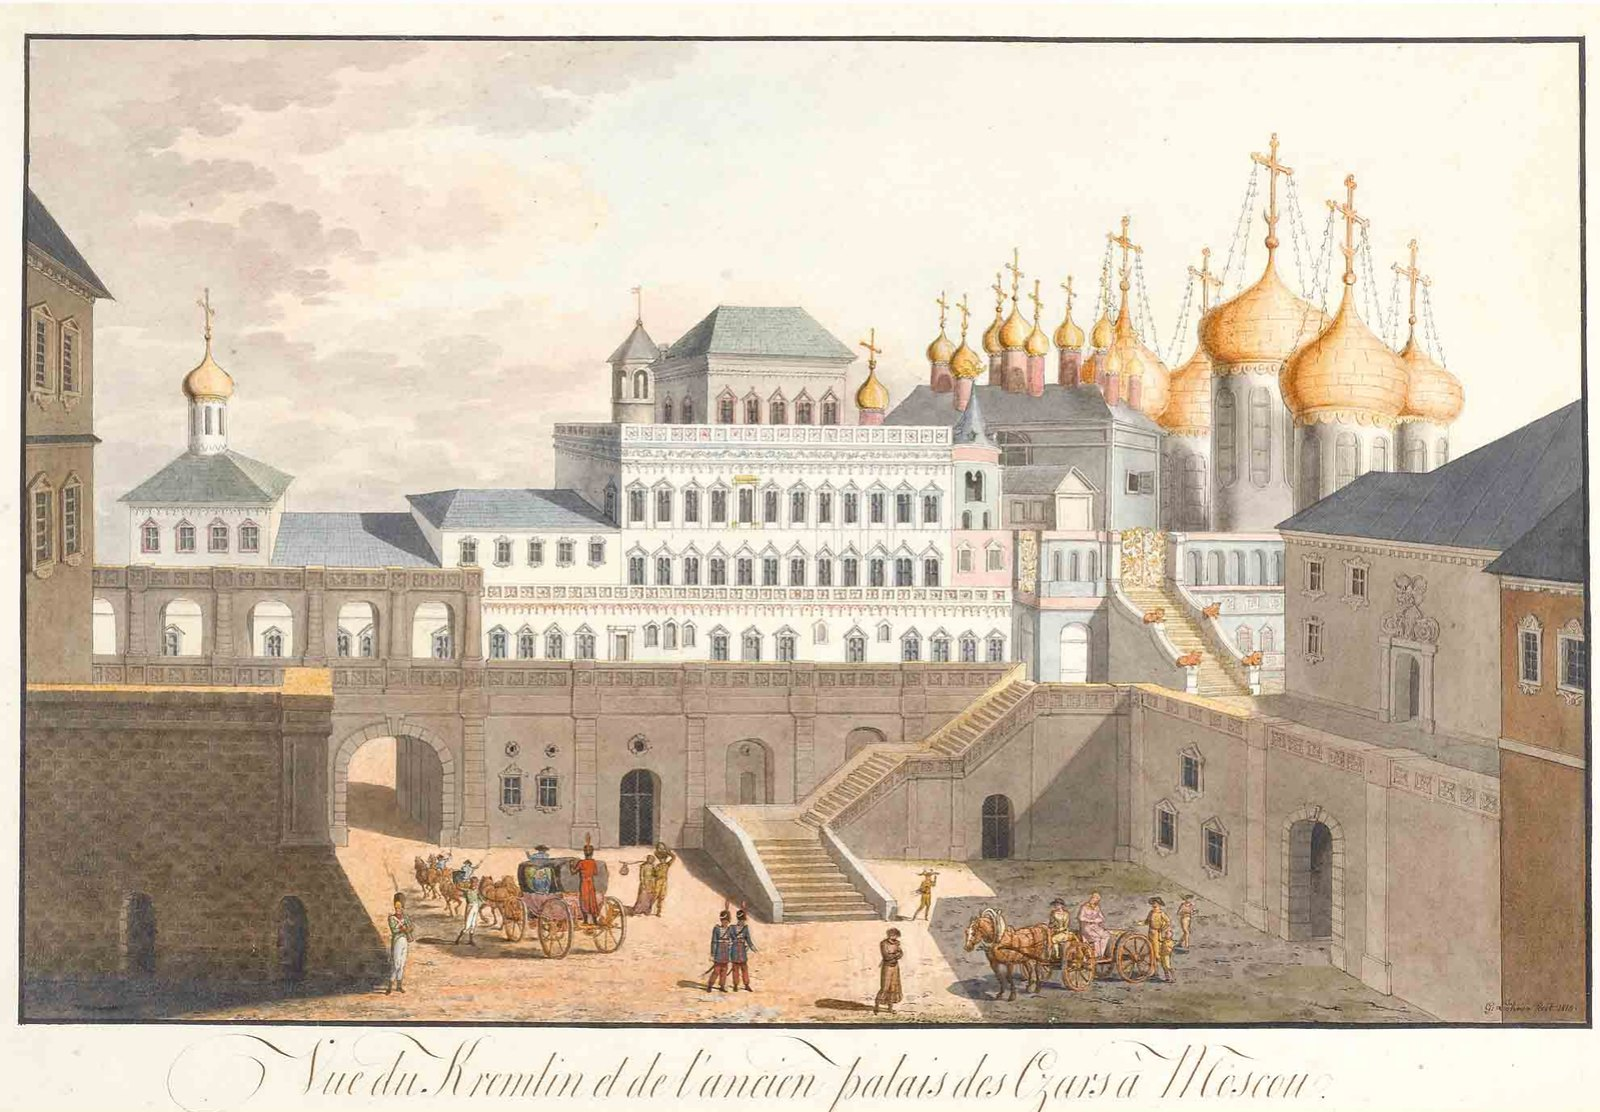 View of the Kremlin by Johanne Gottlieb Lohrer, 1813